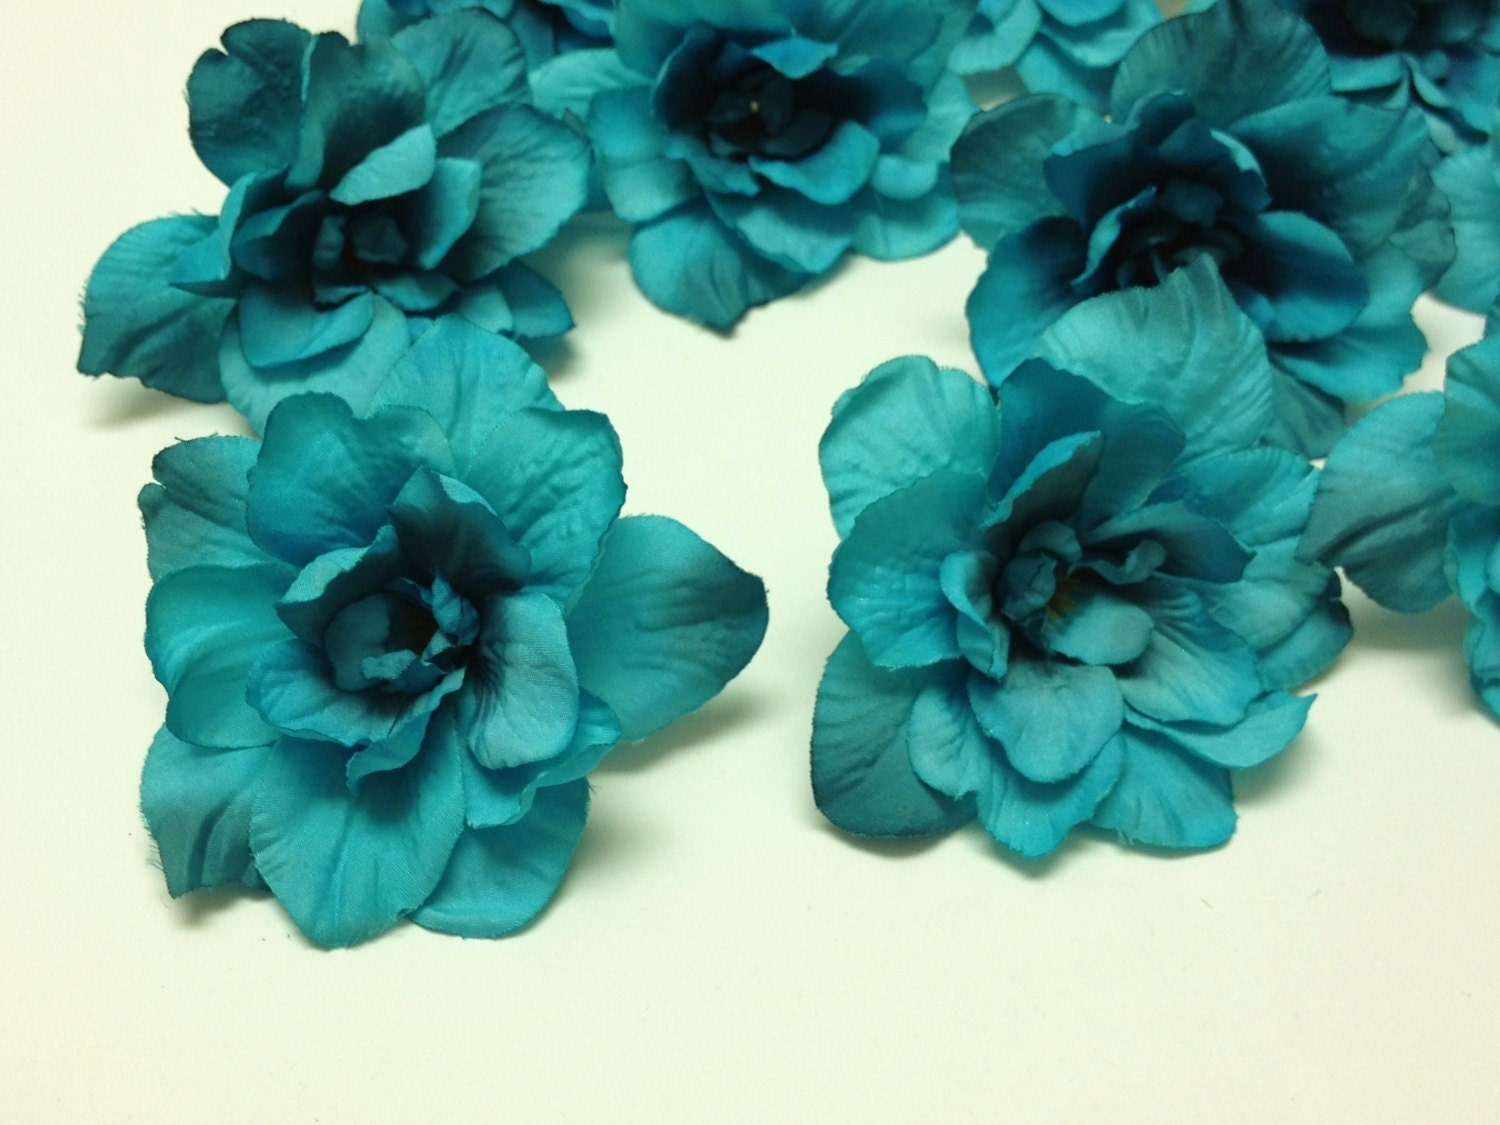 Silk flowers 10 delphinium blossoms in turquoise aqua blue zoom mightylinksfo Images